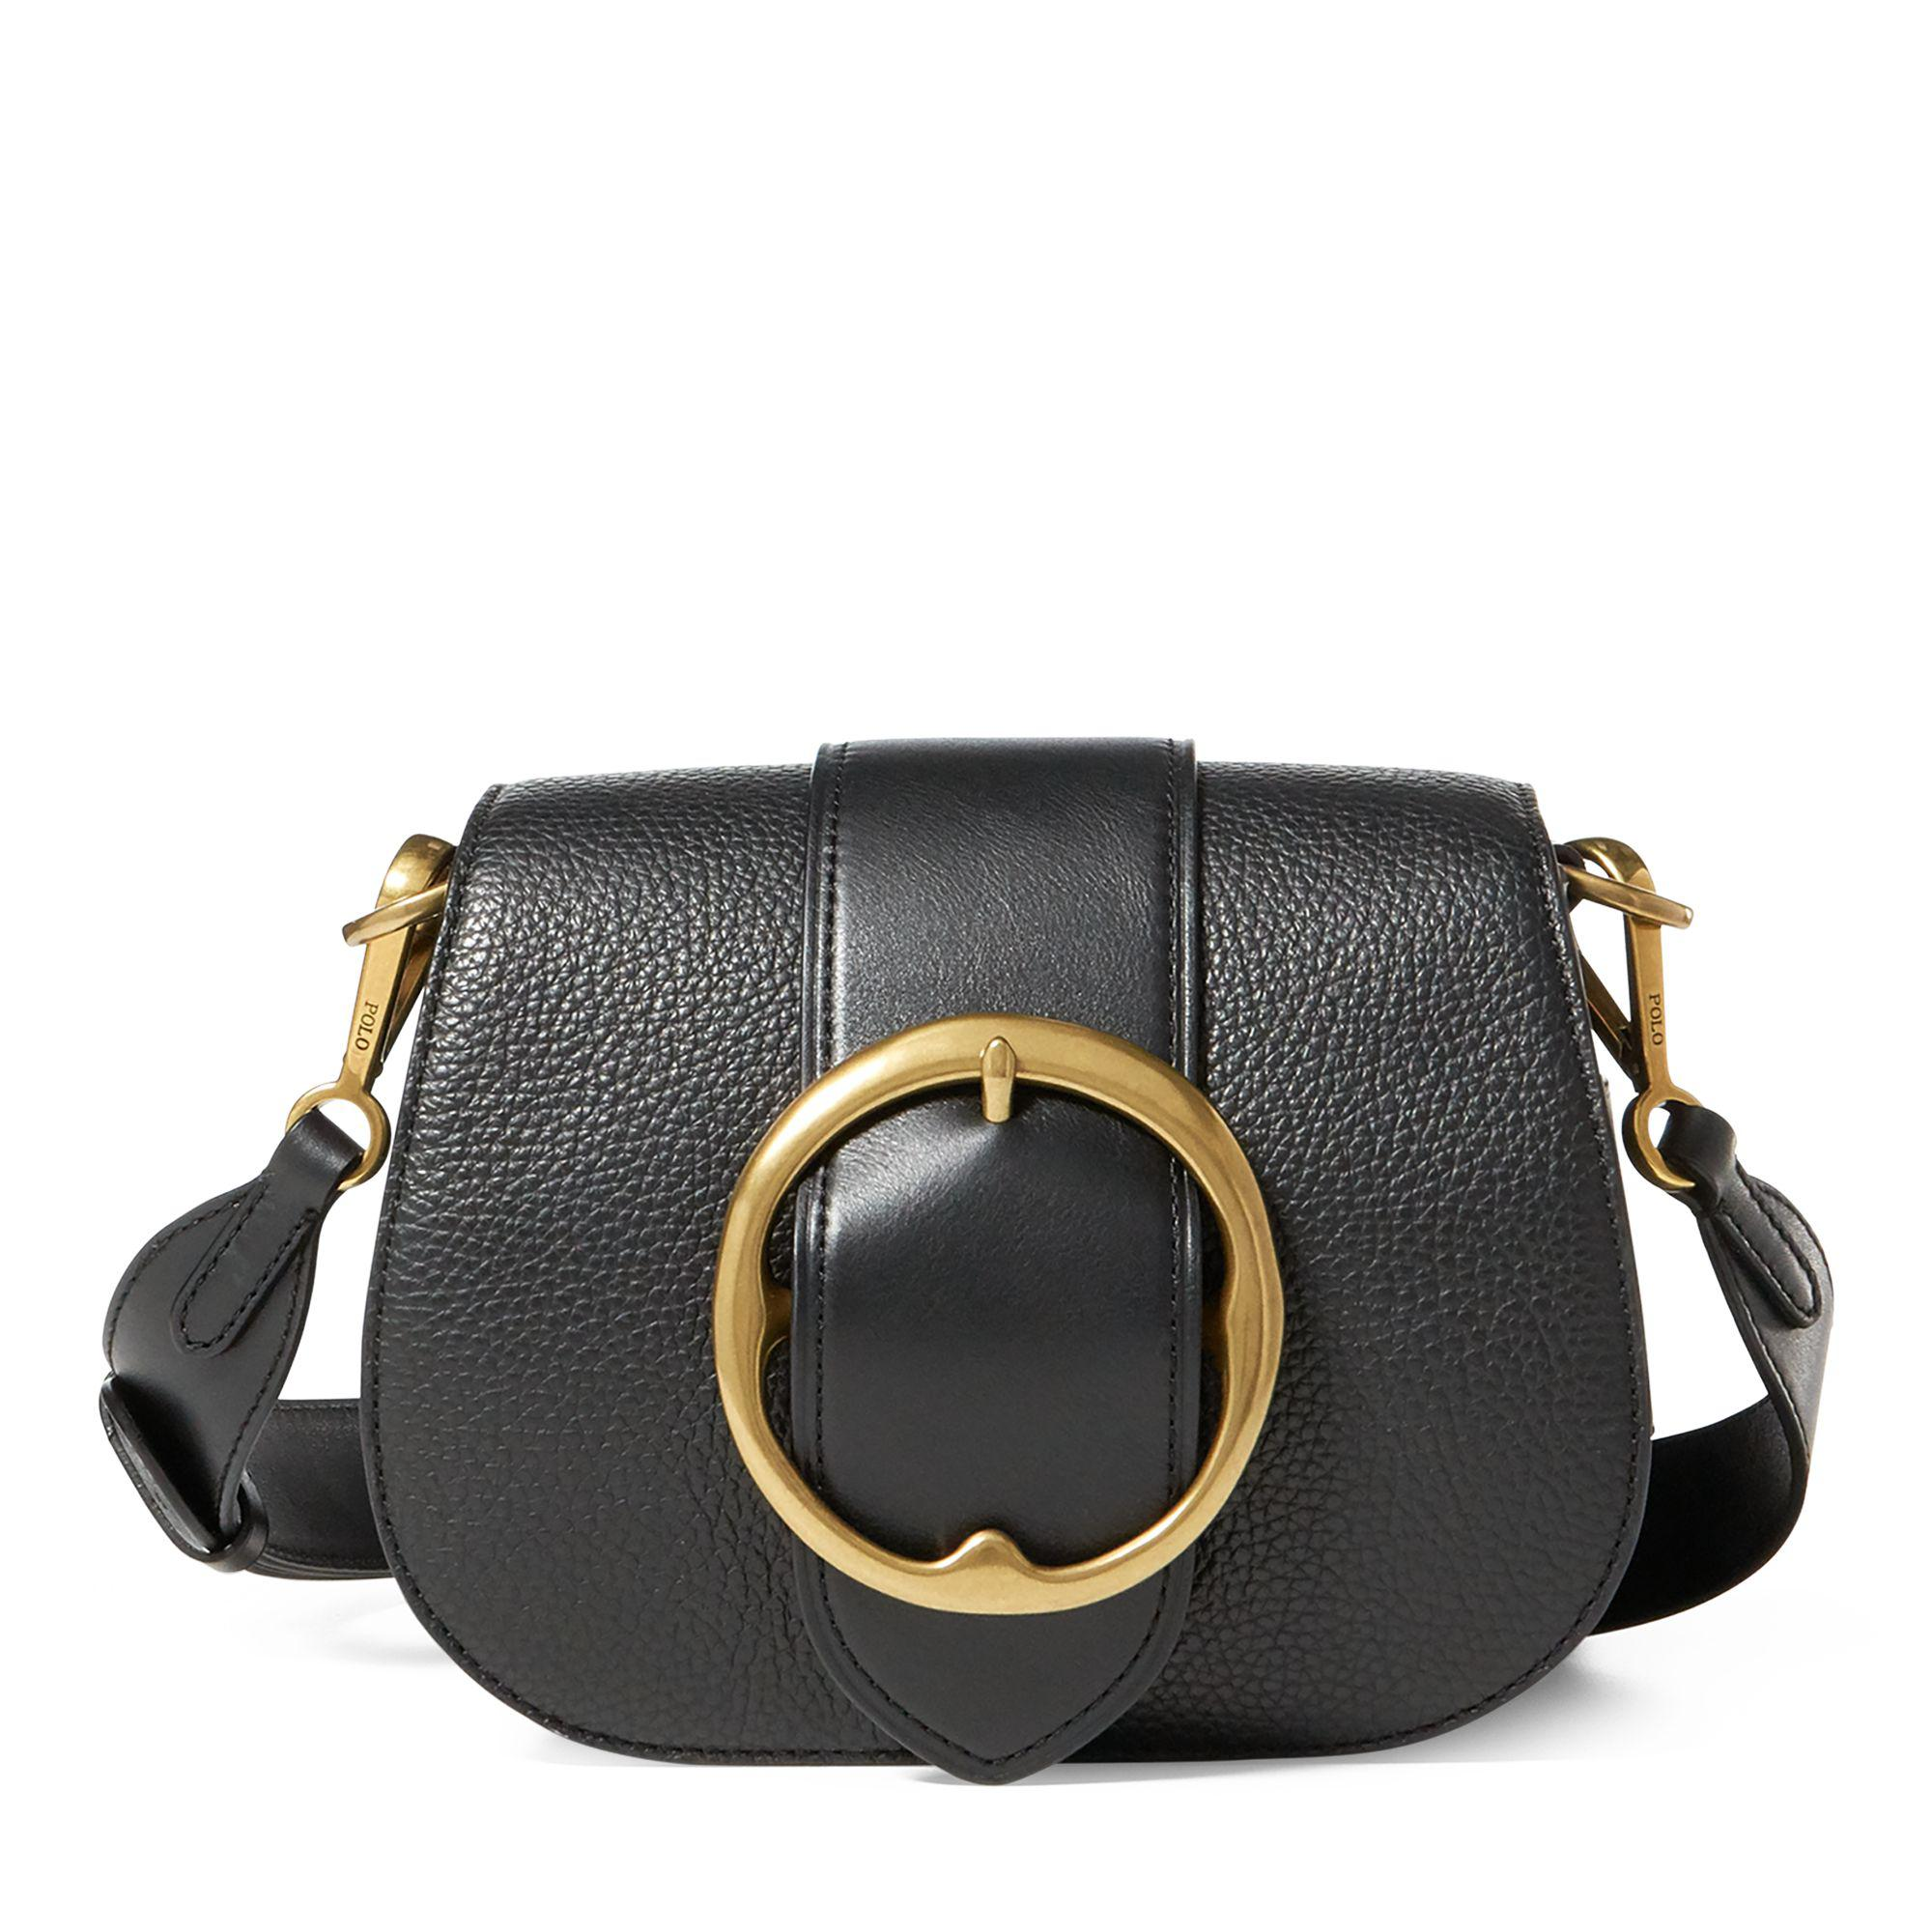 9a21cab142 Polo Ralph Lauren Pebbled Leather Lennox Bag in Black - Save ...